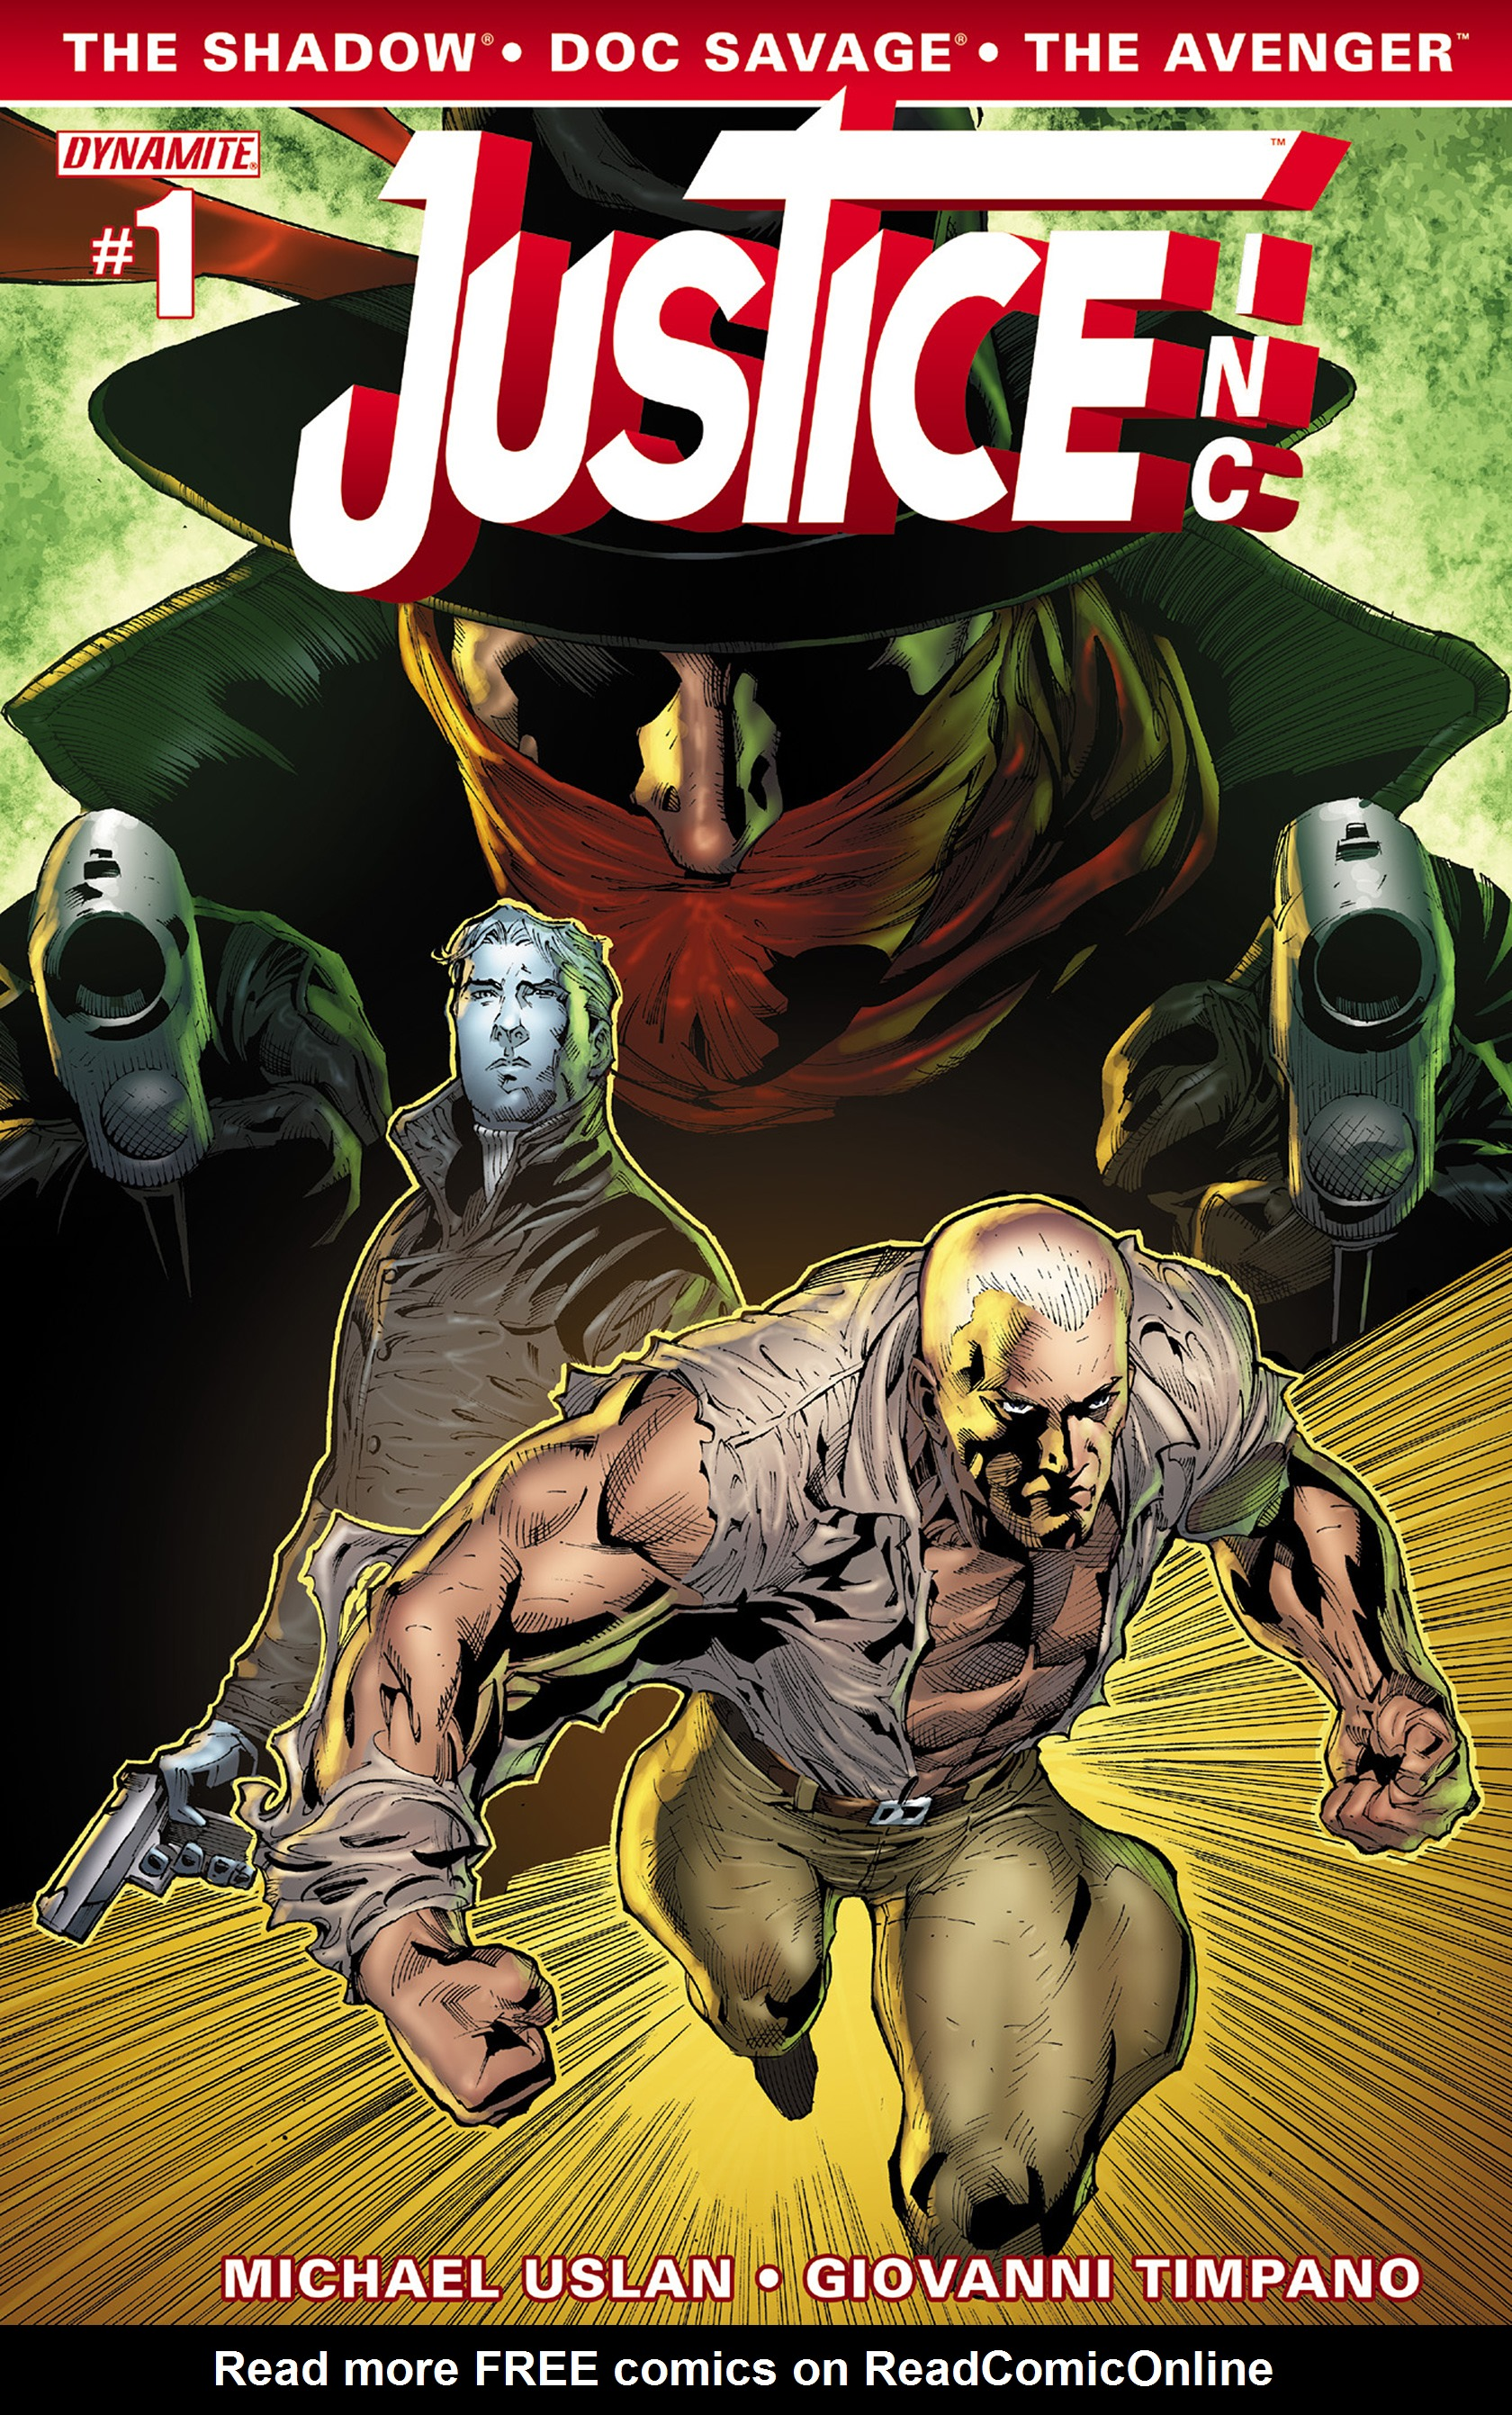 Read online Justice, Inc. comic -  Issue #1 - 4